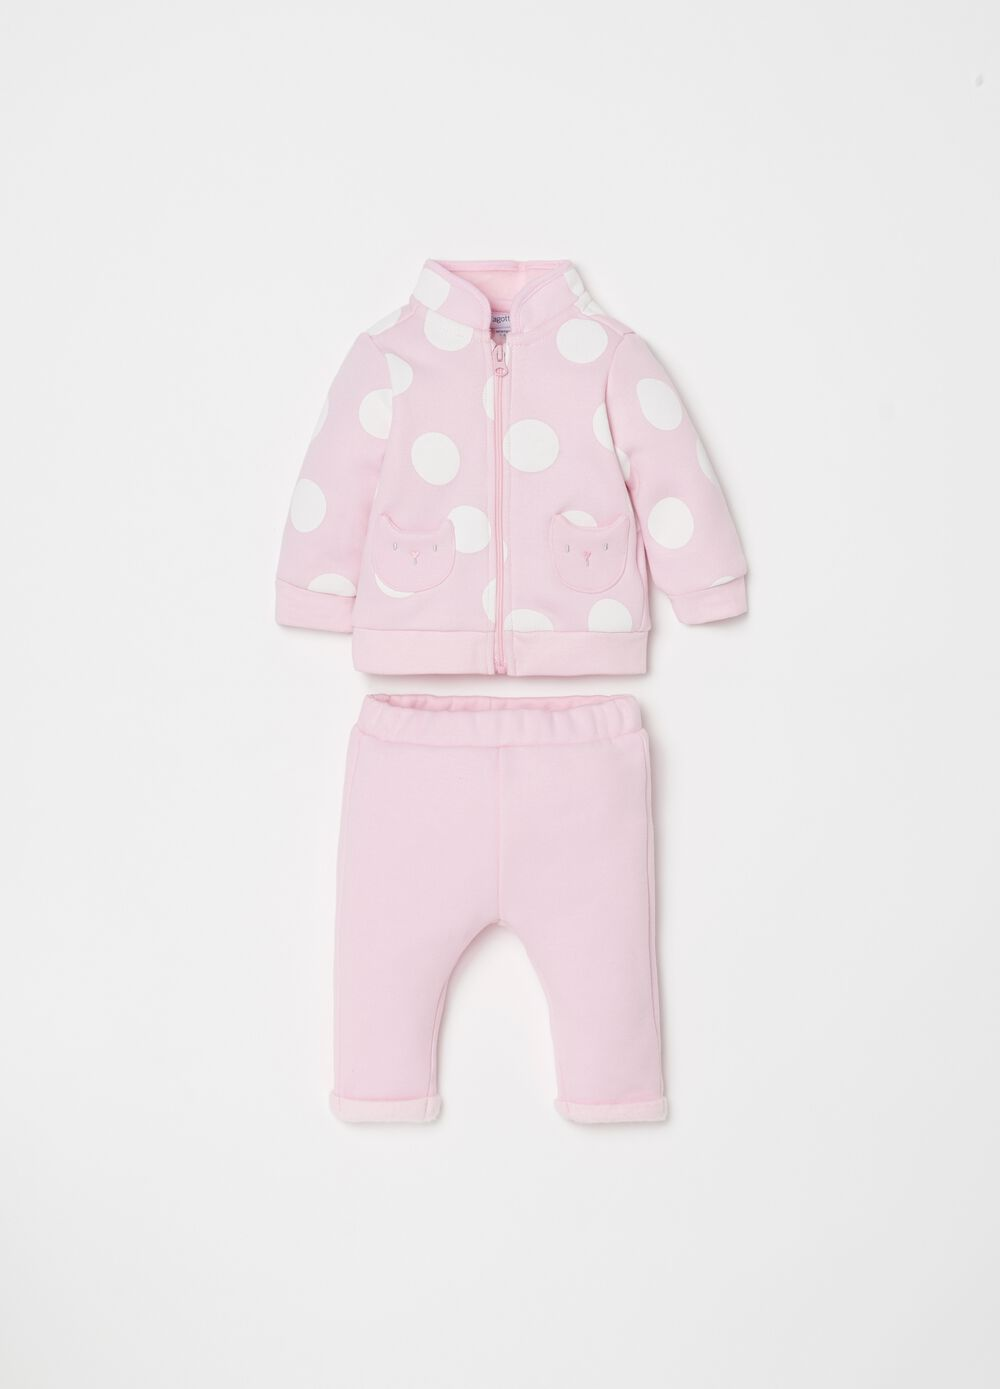 Sweatshirt and trousers set with polka dots